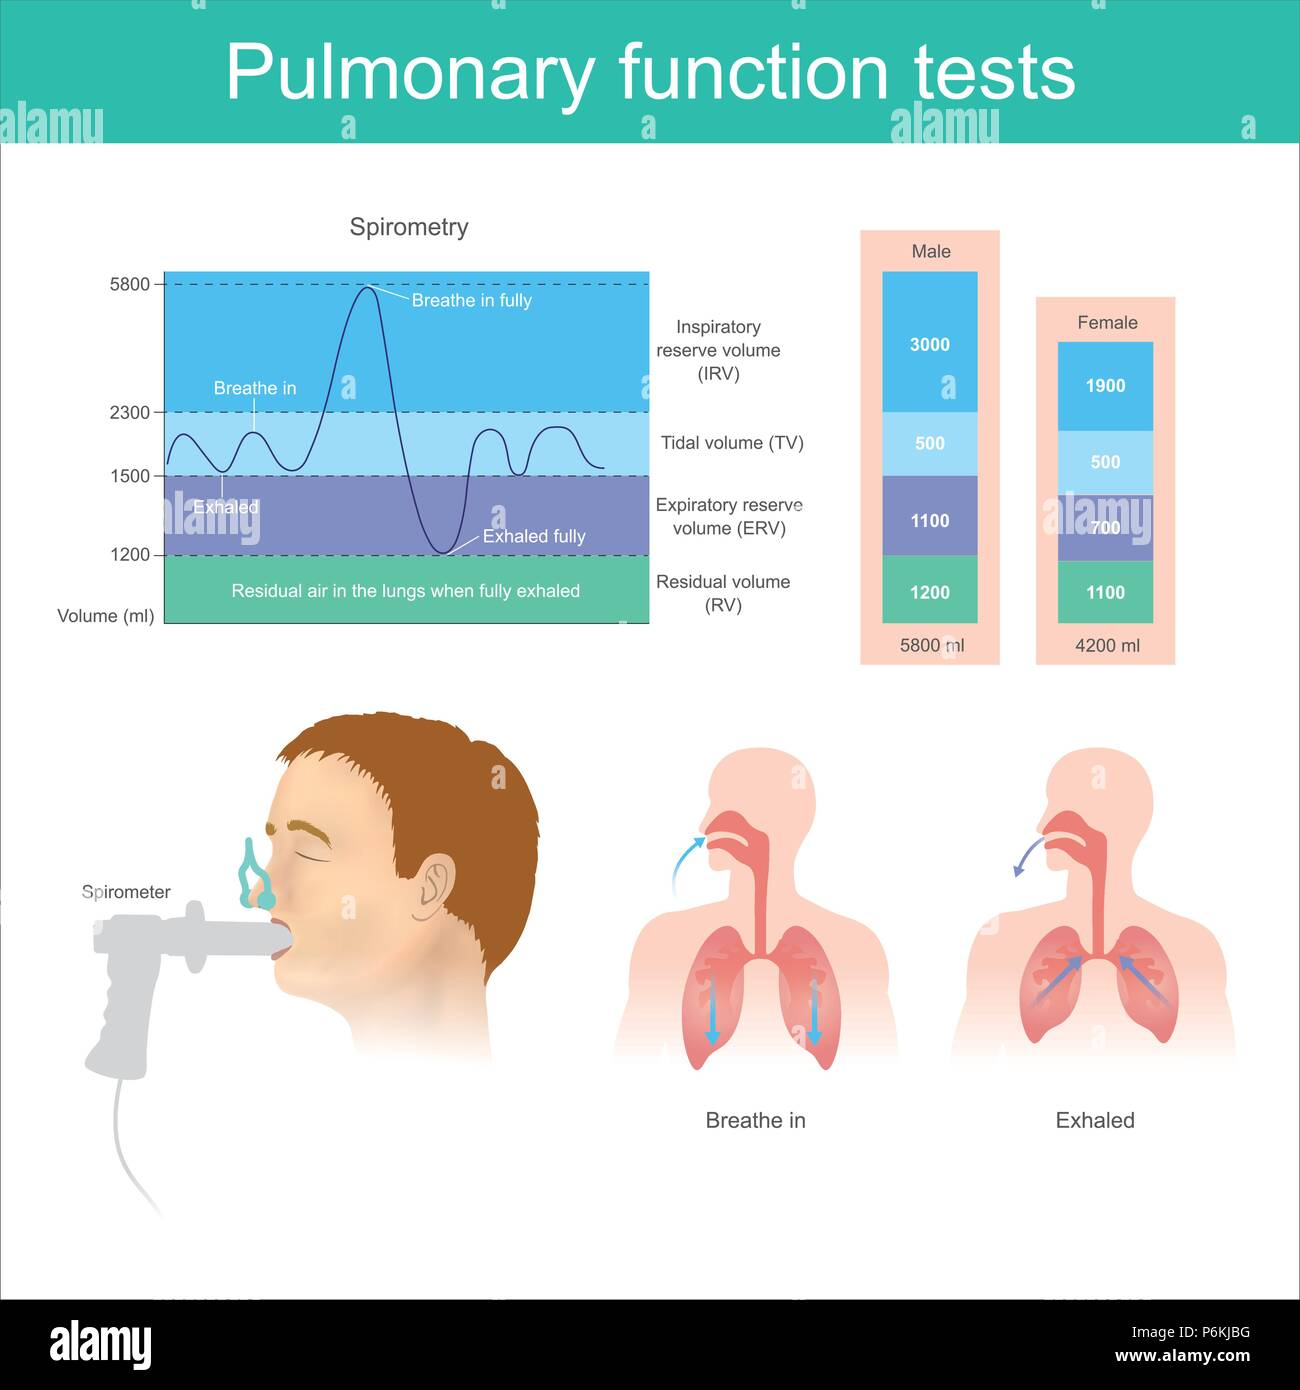 Pulmonary function tests. Testing for volume of air in the lungs during breathe in and exhaling fully. - Stock Image